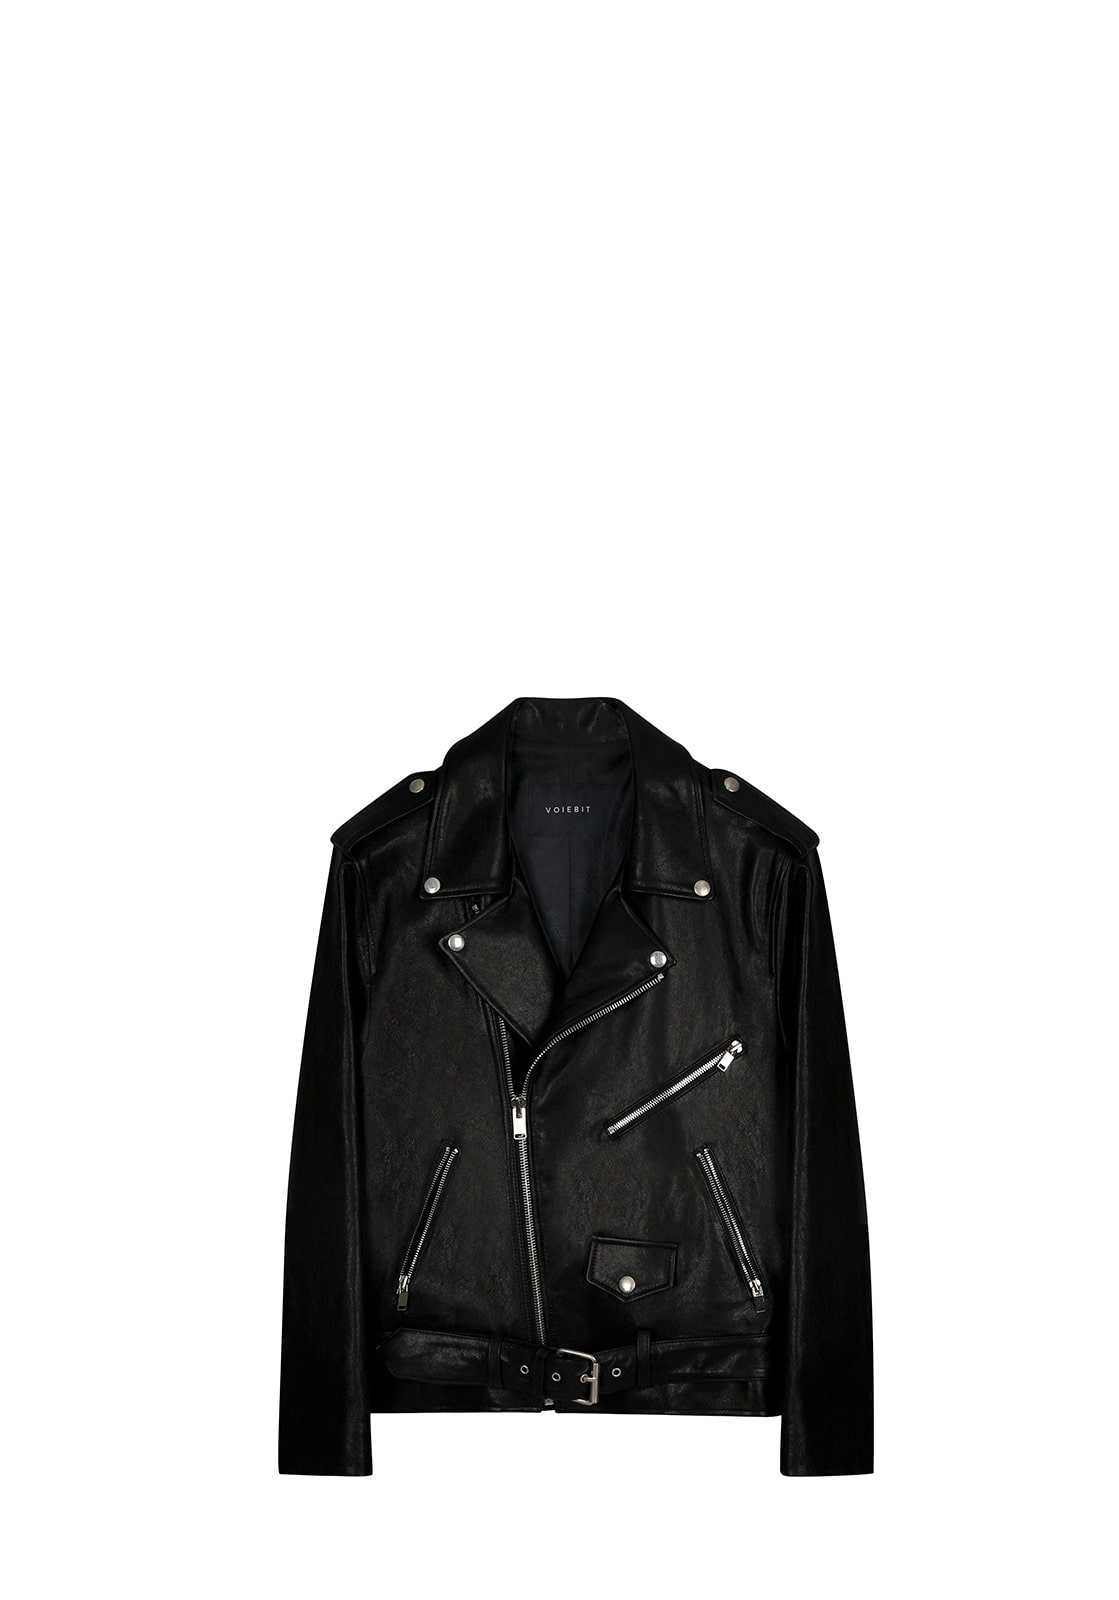 LINE ZIPPER LEATHER JACKETBLACK